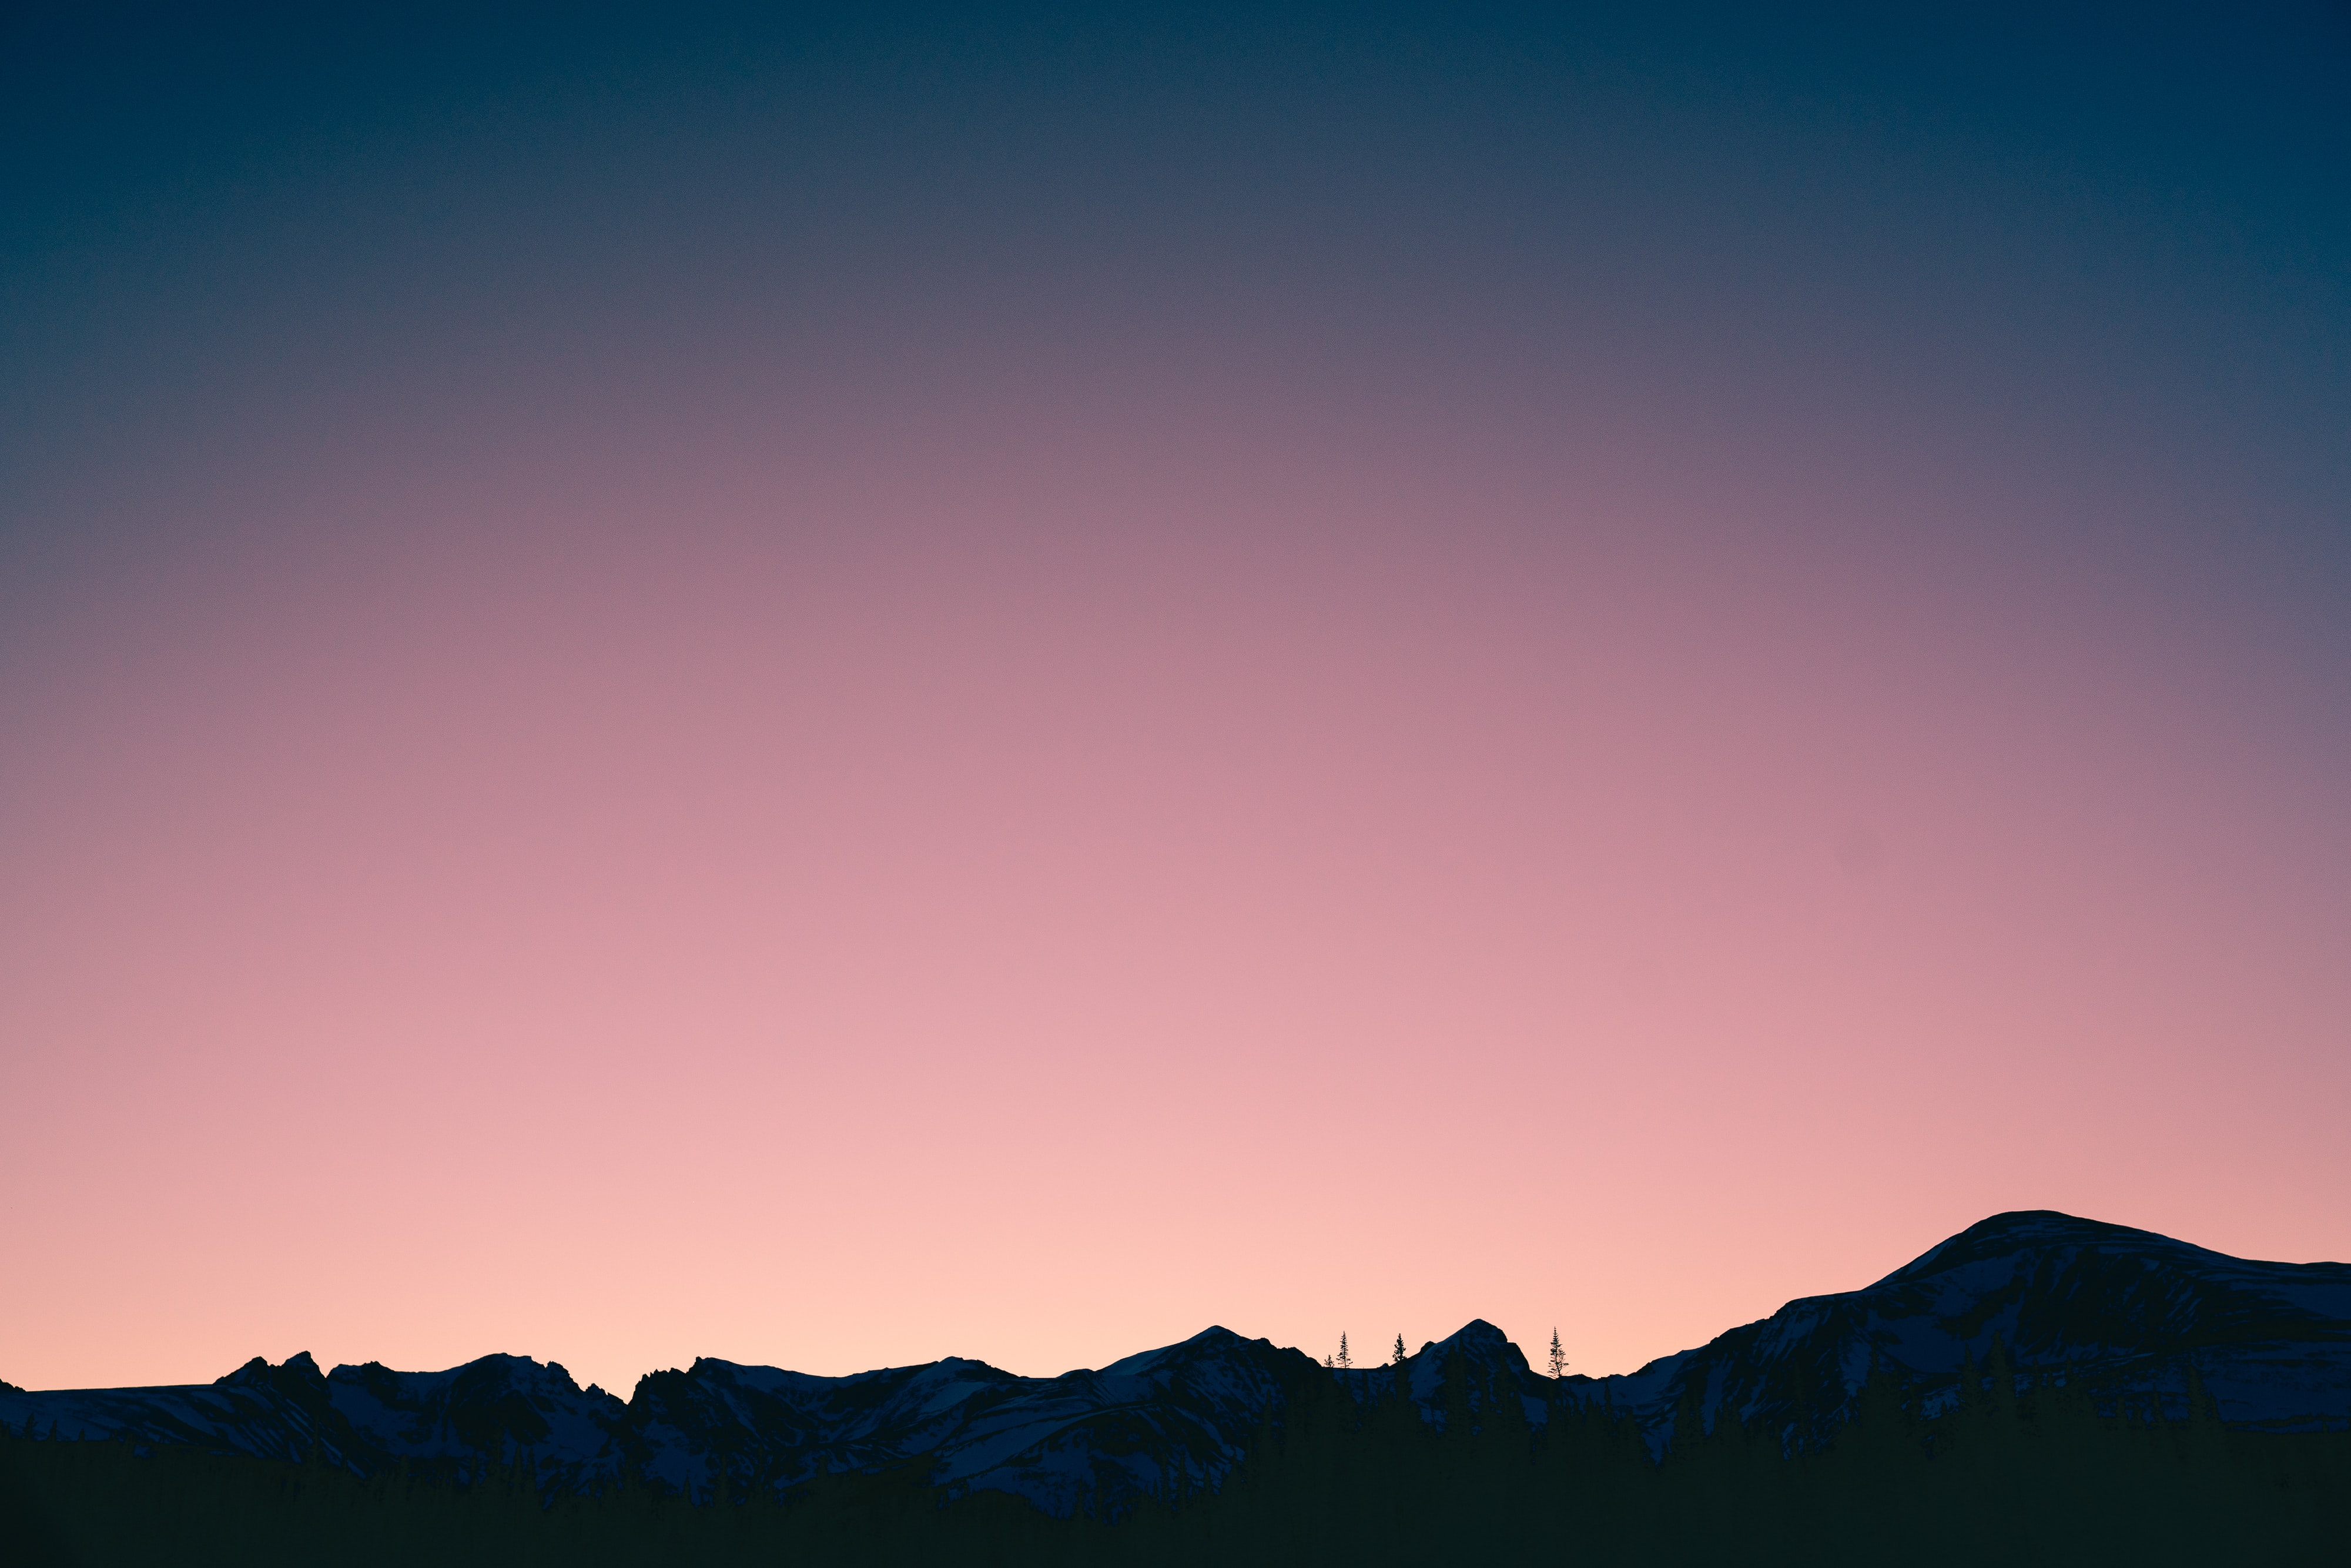 silhouette of mountain with pink sky